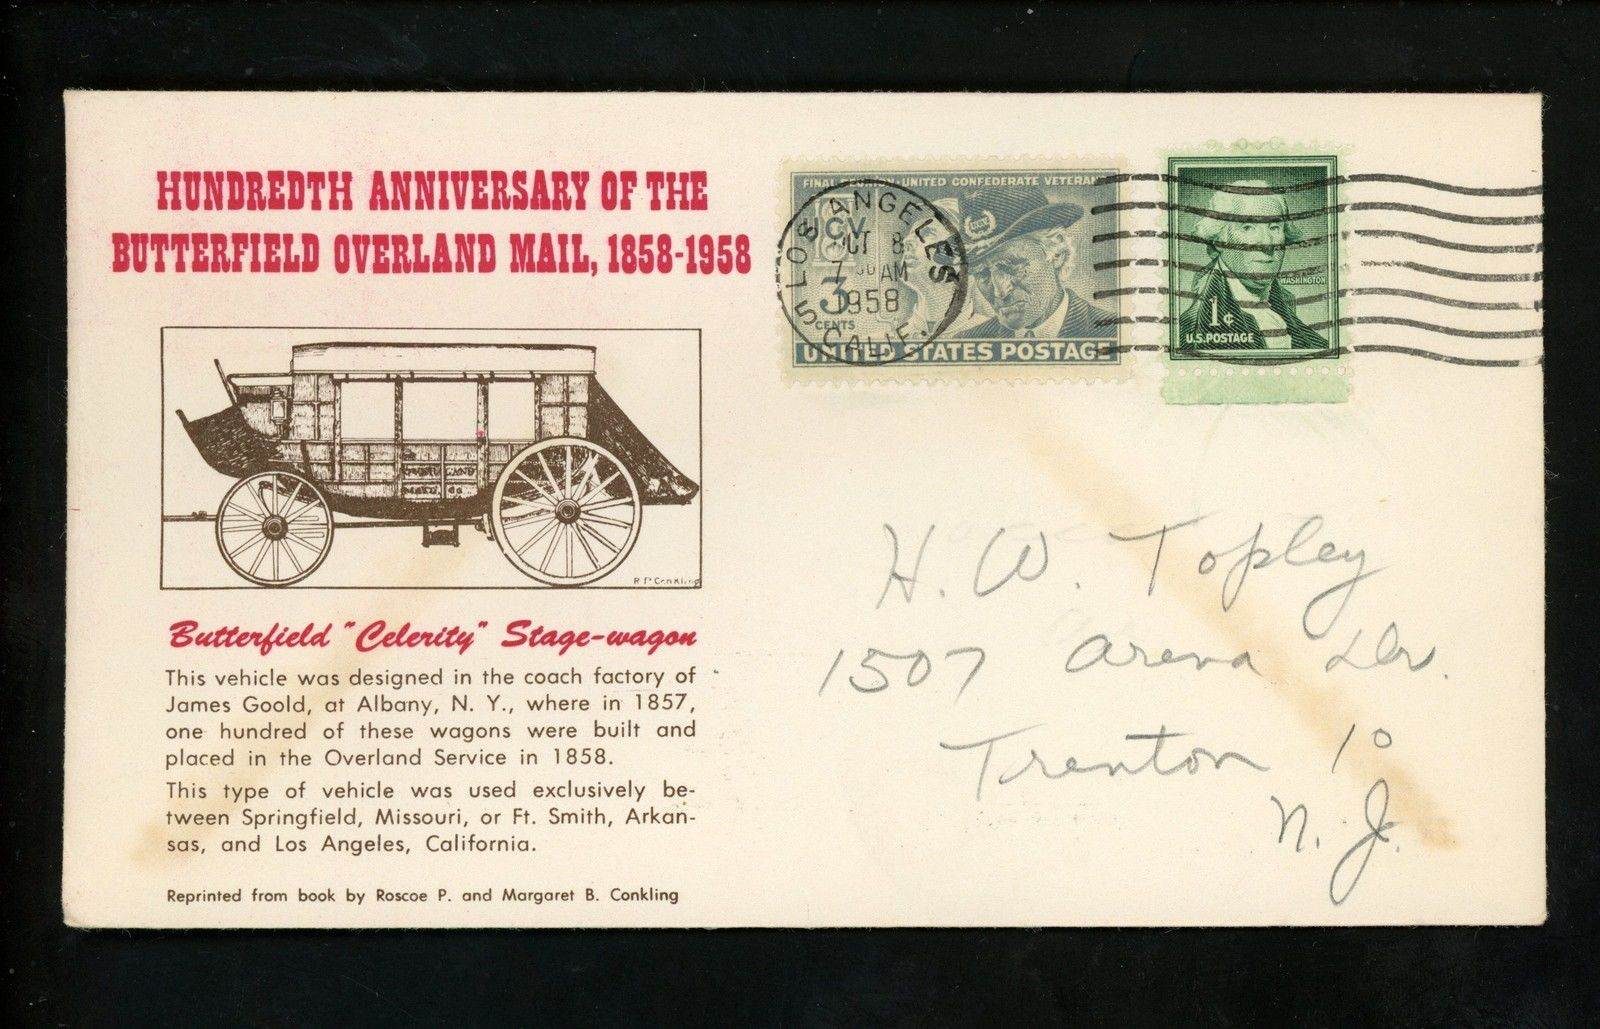 Covers posted on a centennial commemorative journey of a Butterfield Overland Mail stagecoach. The coach arrived in San Francisco on October 10, 1958.